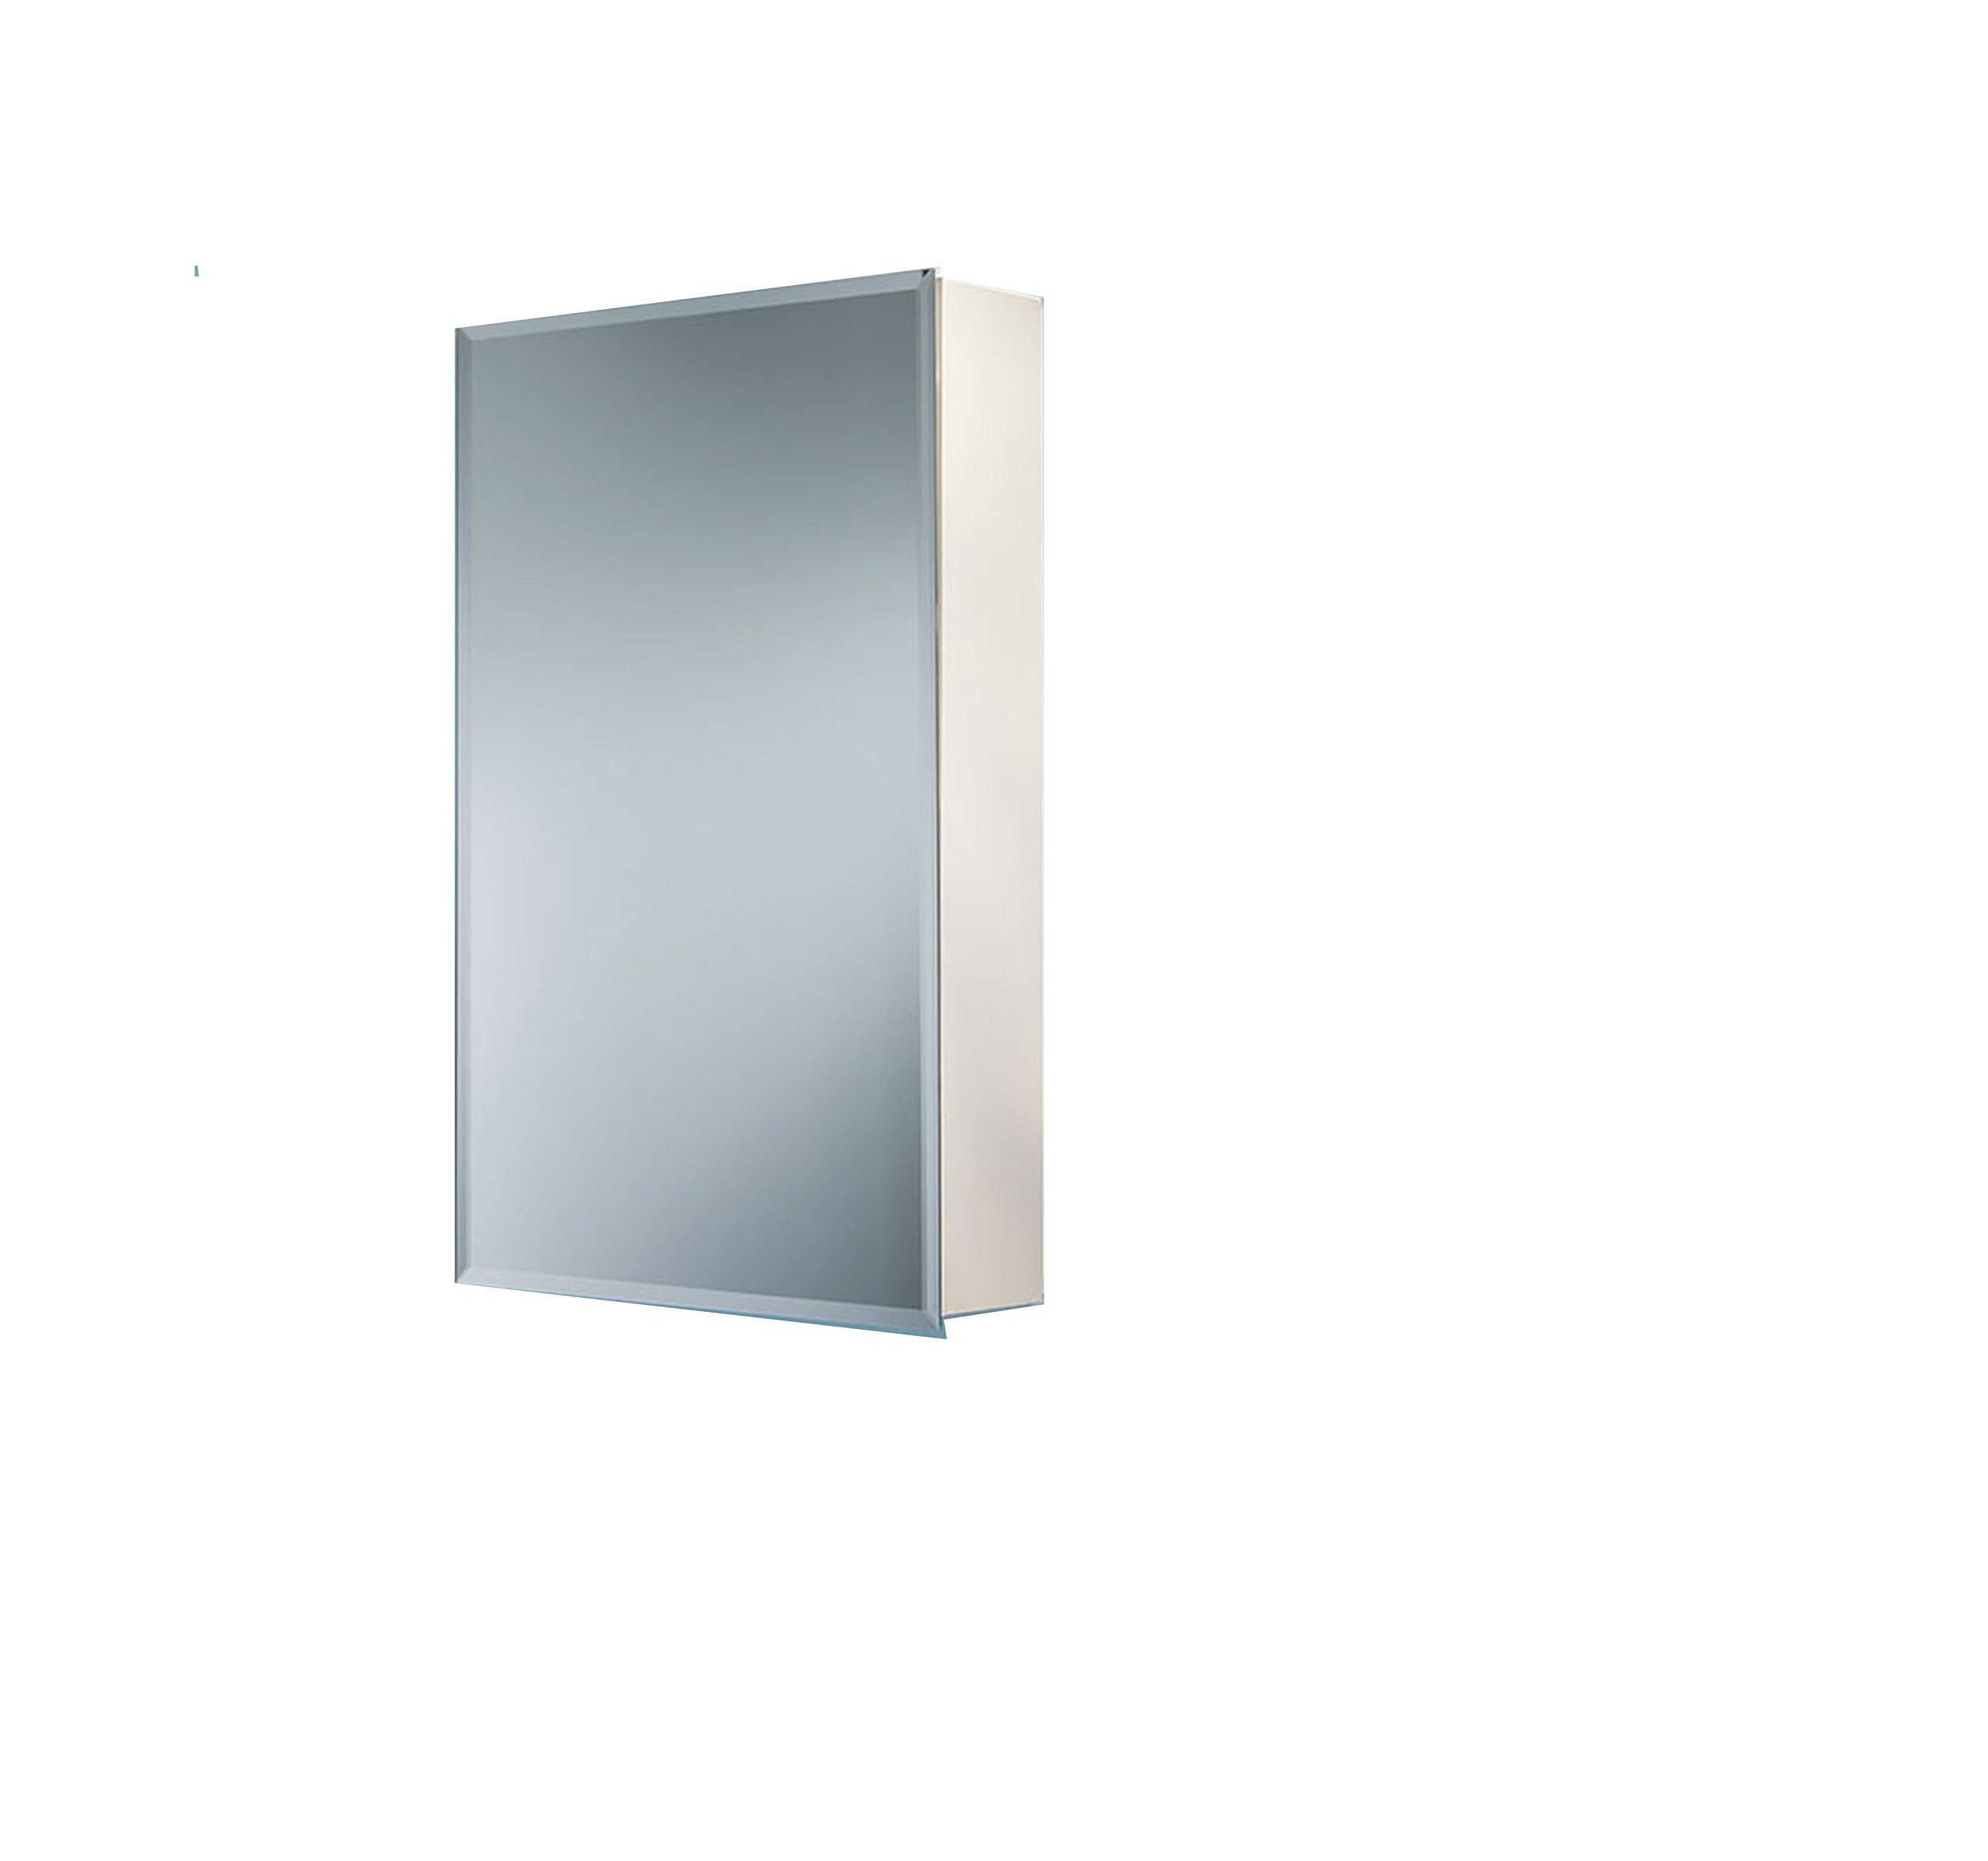 "Jensen 1451X Bevel Mirror Medicine Cabinet, 16"" x 26"" - Recess mount: wall opening - 14 inch w x 18 inch H Left or right hand opening with continuous piano hinge Frameless 1/2 in beveled mirror on door exterior - shelves-cabinets, bathroom-fixtures-hardware, bathroom - 71LNqmpVTwL -"